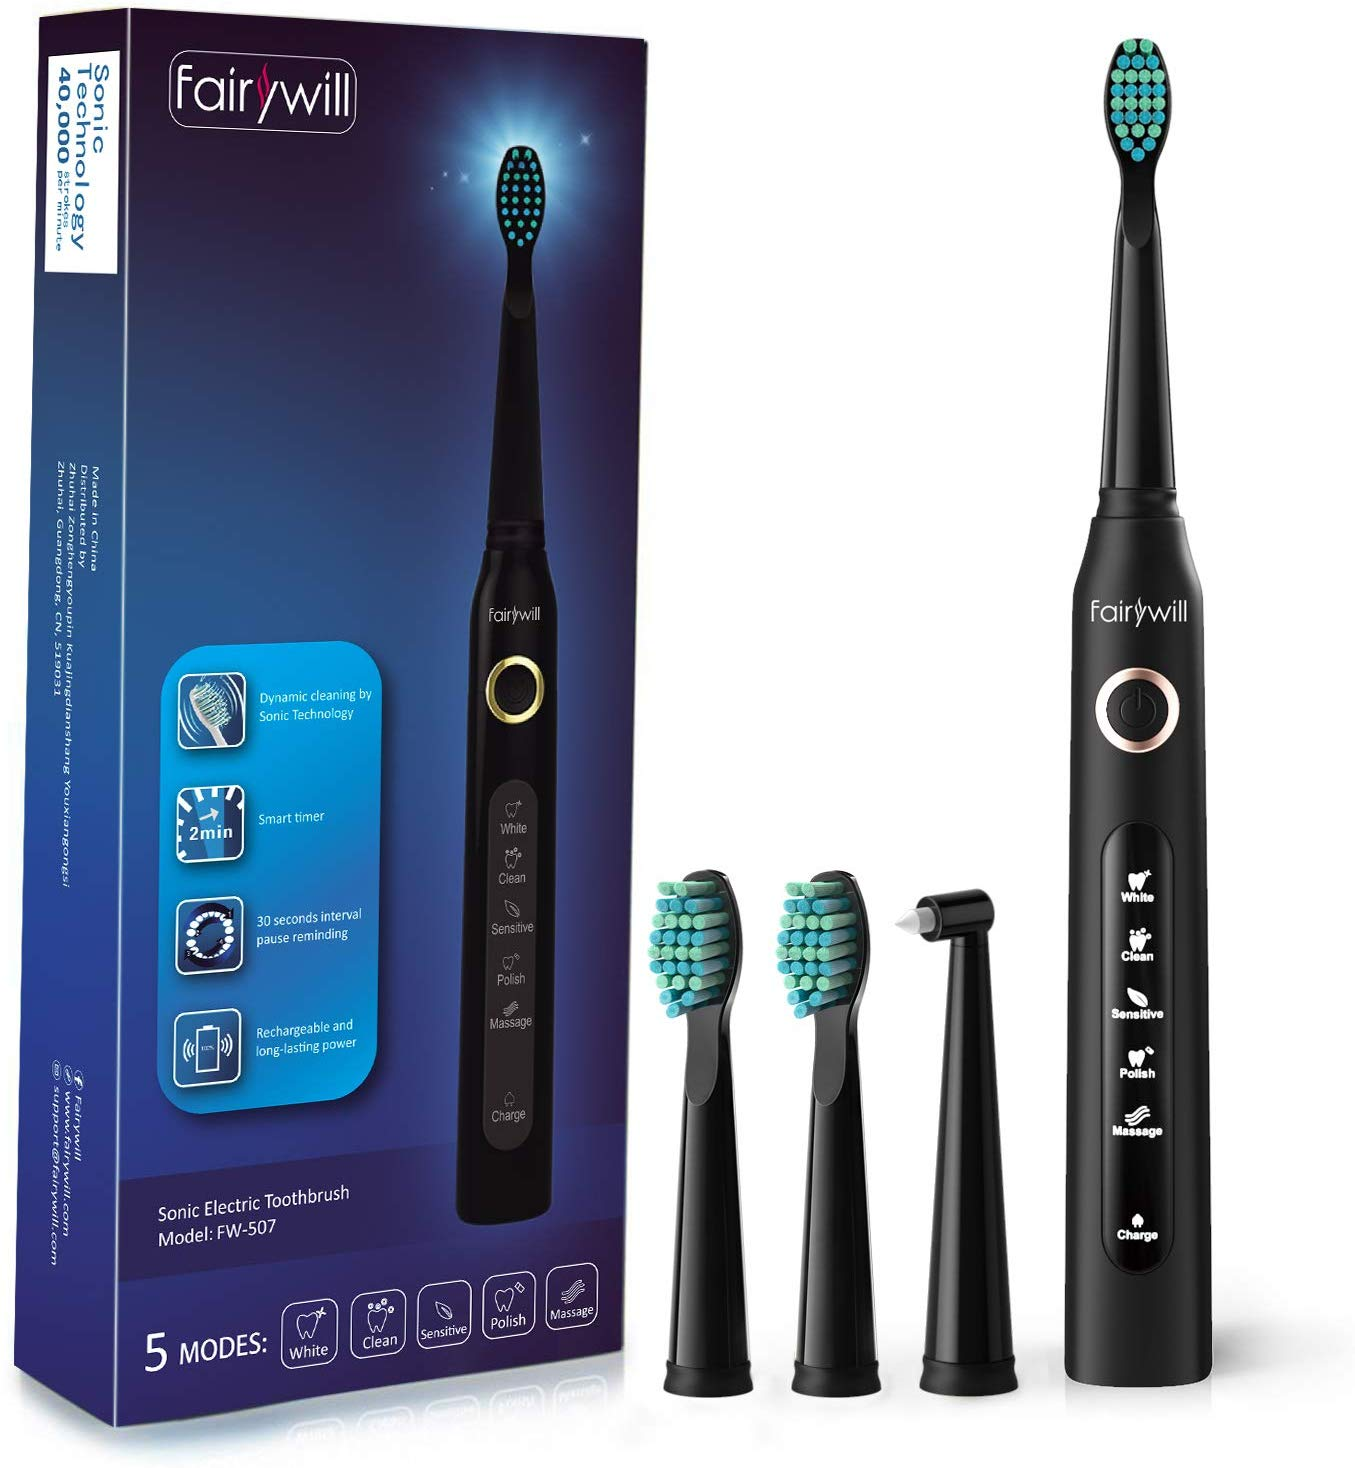 Fairywill Sonic Toothbrush 5 Optional Modes,3 Brush Heads Black for £15.29 Prime